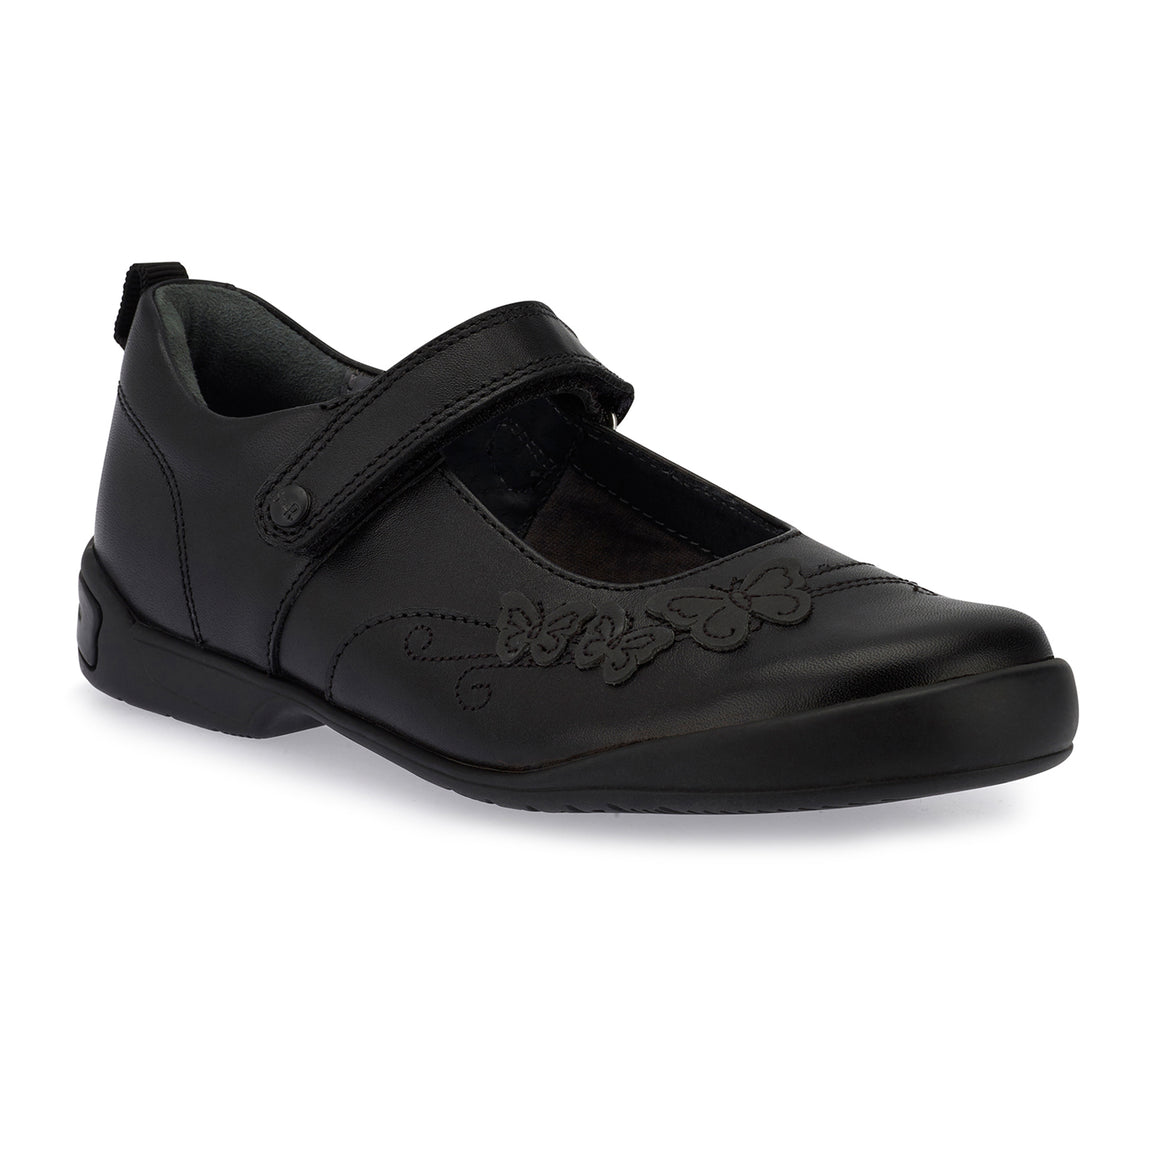 Pump School Shoes for Girls in Black